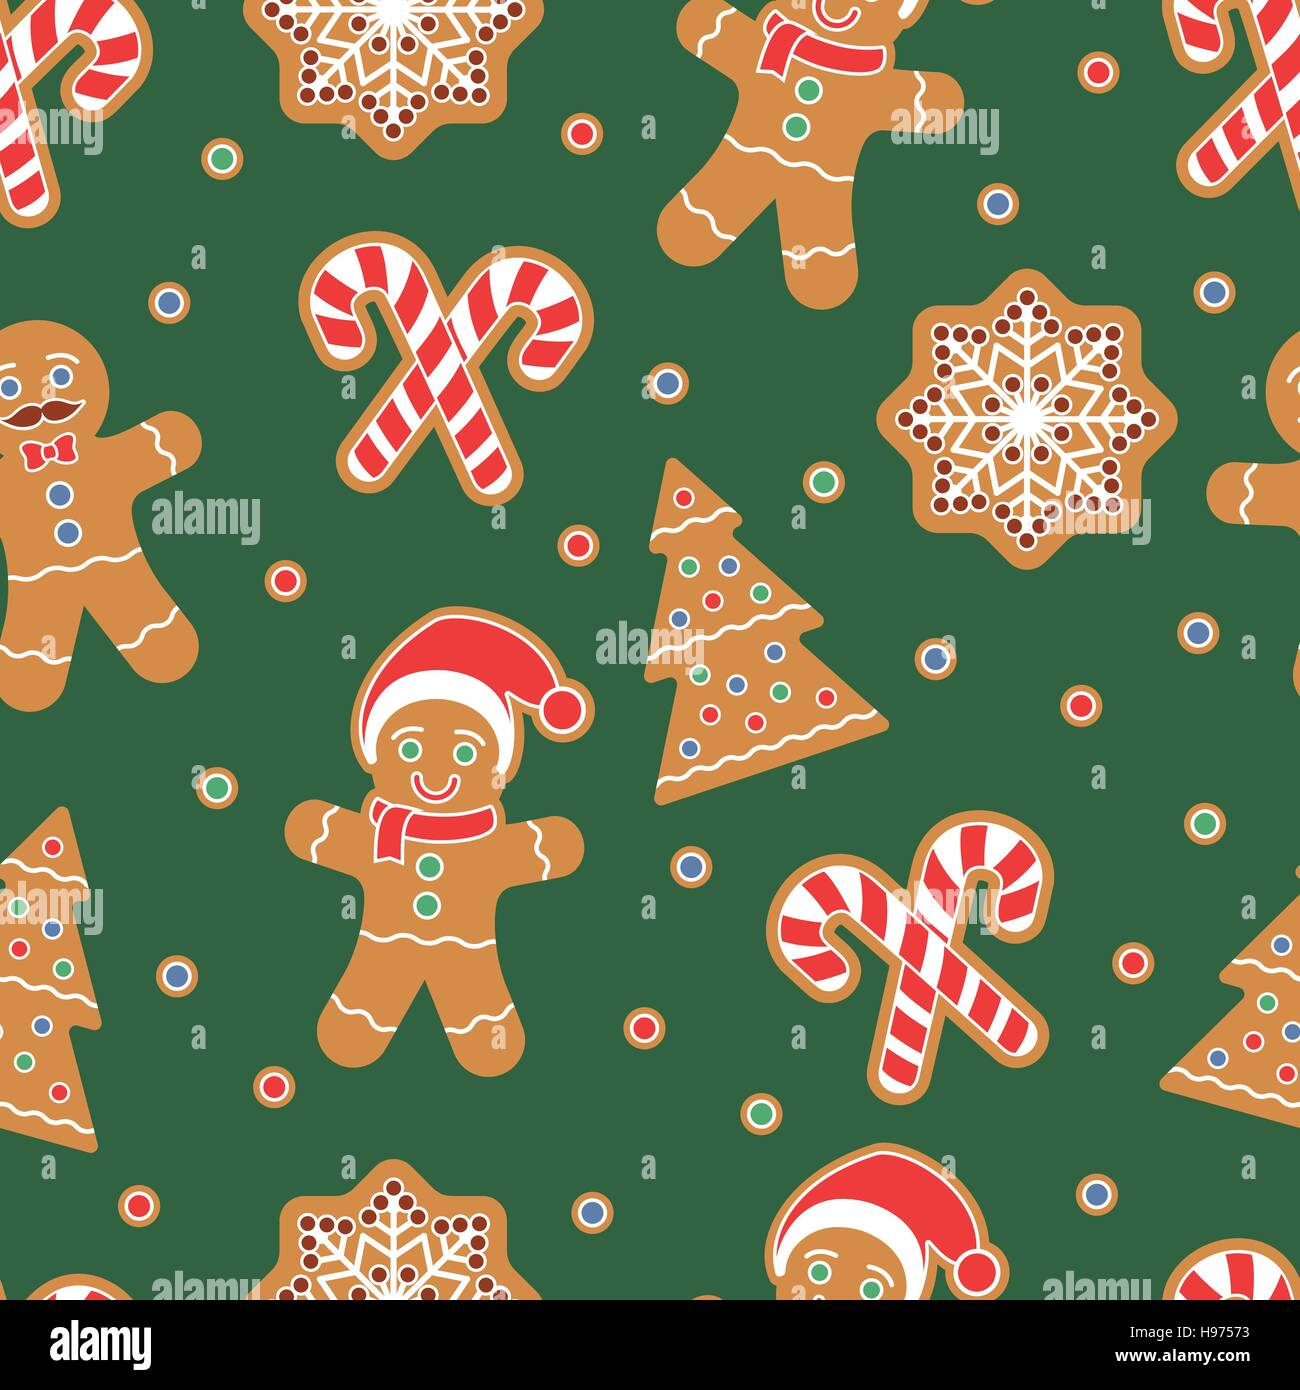 Christmas Themed Seamless Pattern Gingerbread Man Cookies